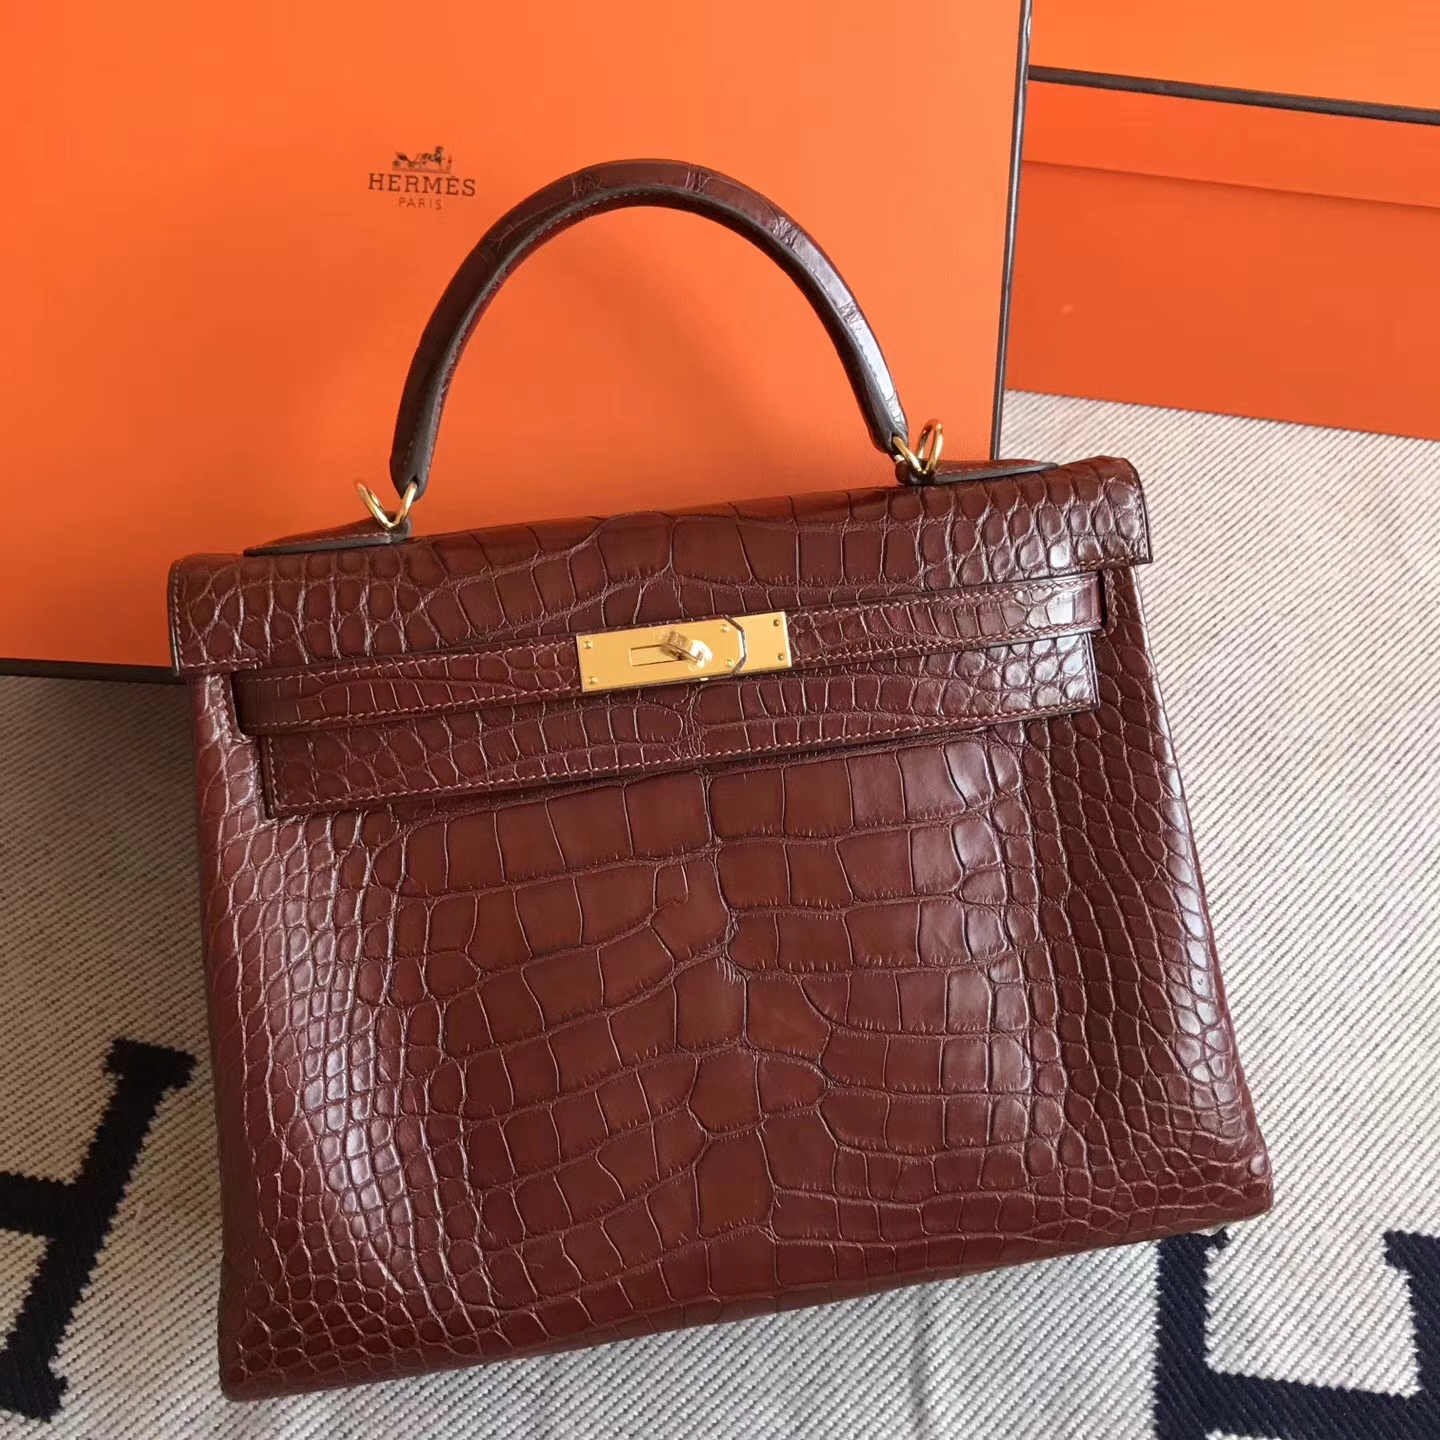 Hand Stitching Hermes Alligator Matt Retourne Kelly Bag32cm Gold Hardware